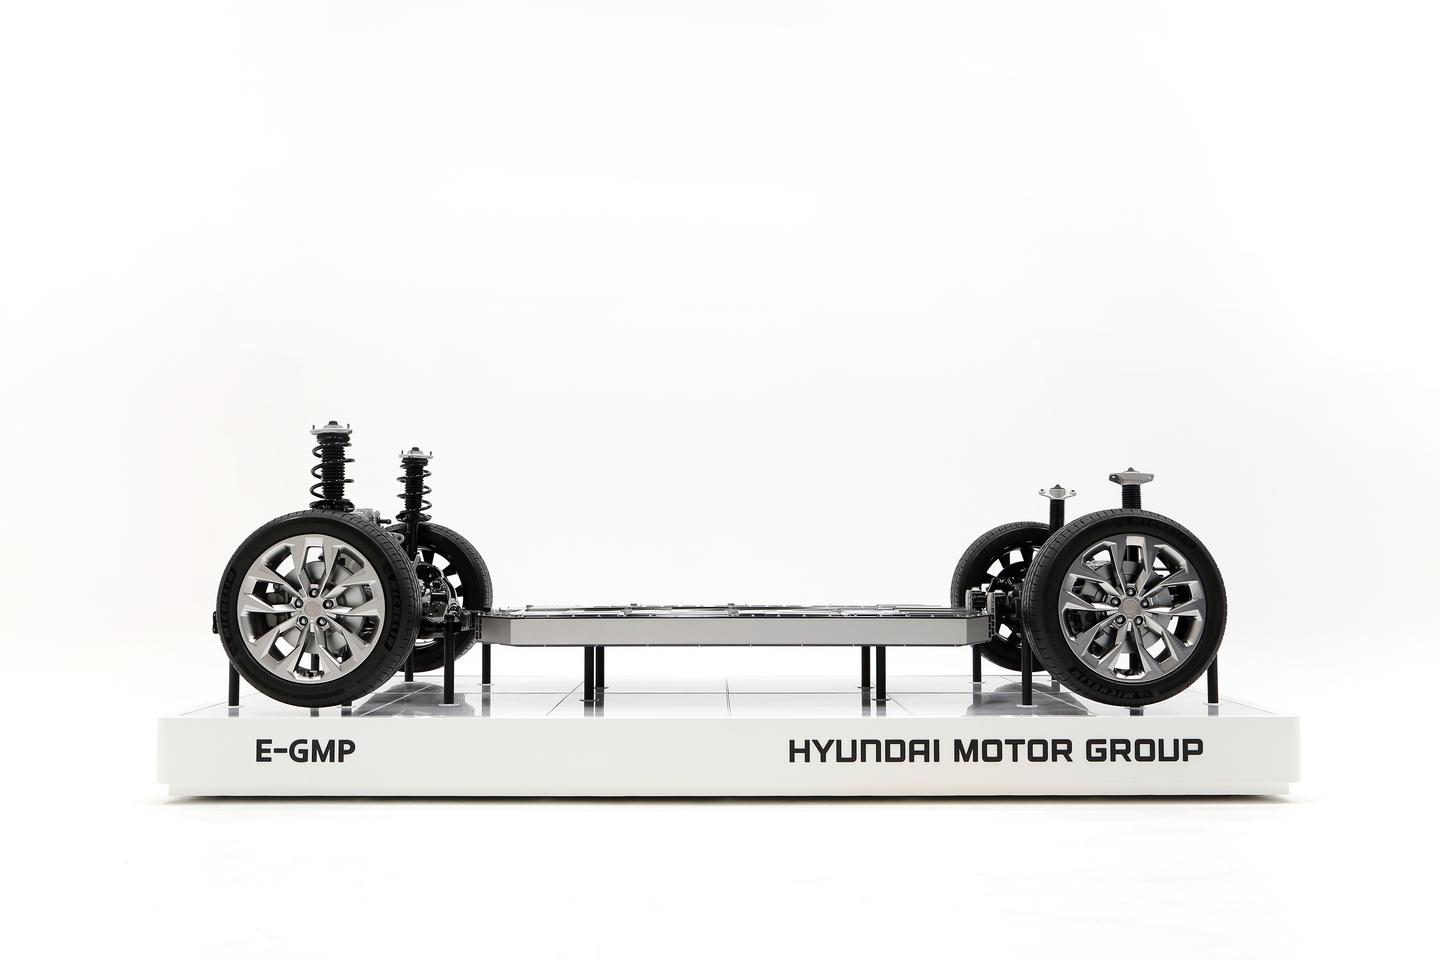 According to Hyundai, electric vehicles built off the E-GMP platform will offer ranges beyond 500 km (310 mph) from a full battery